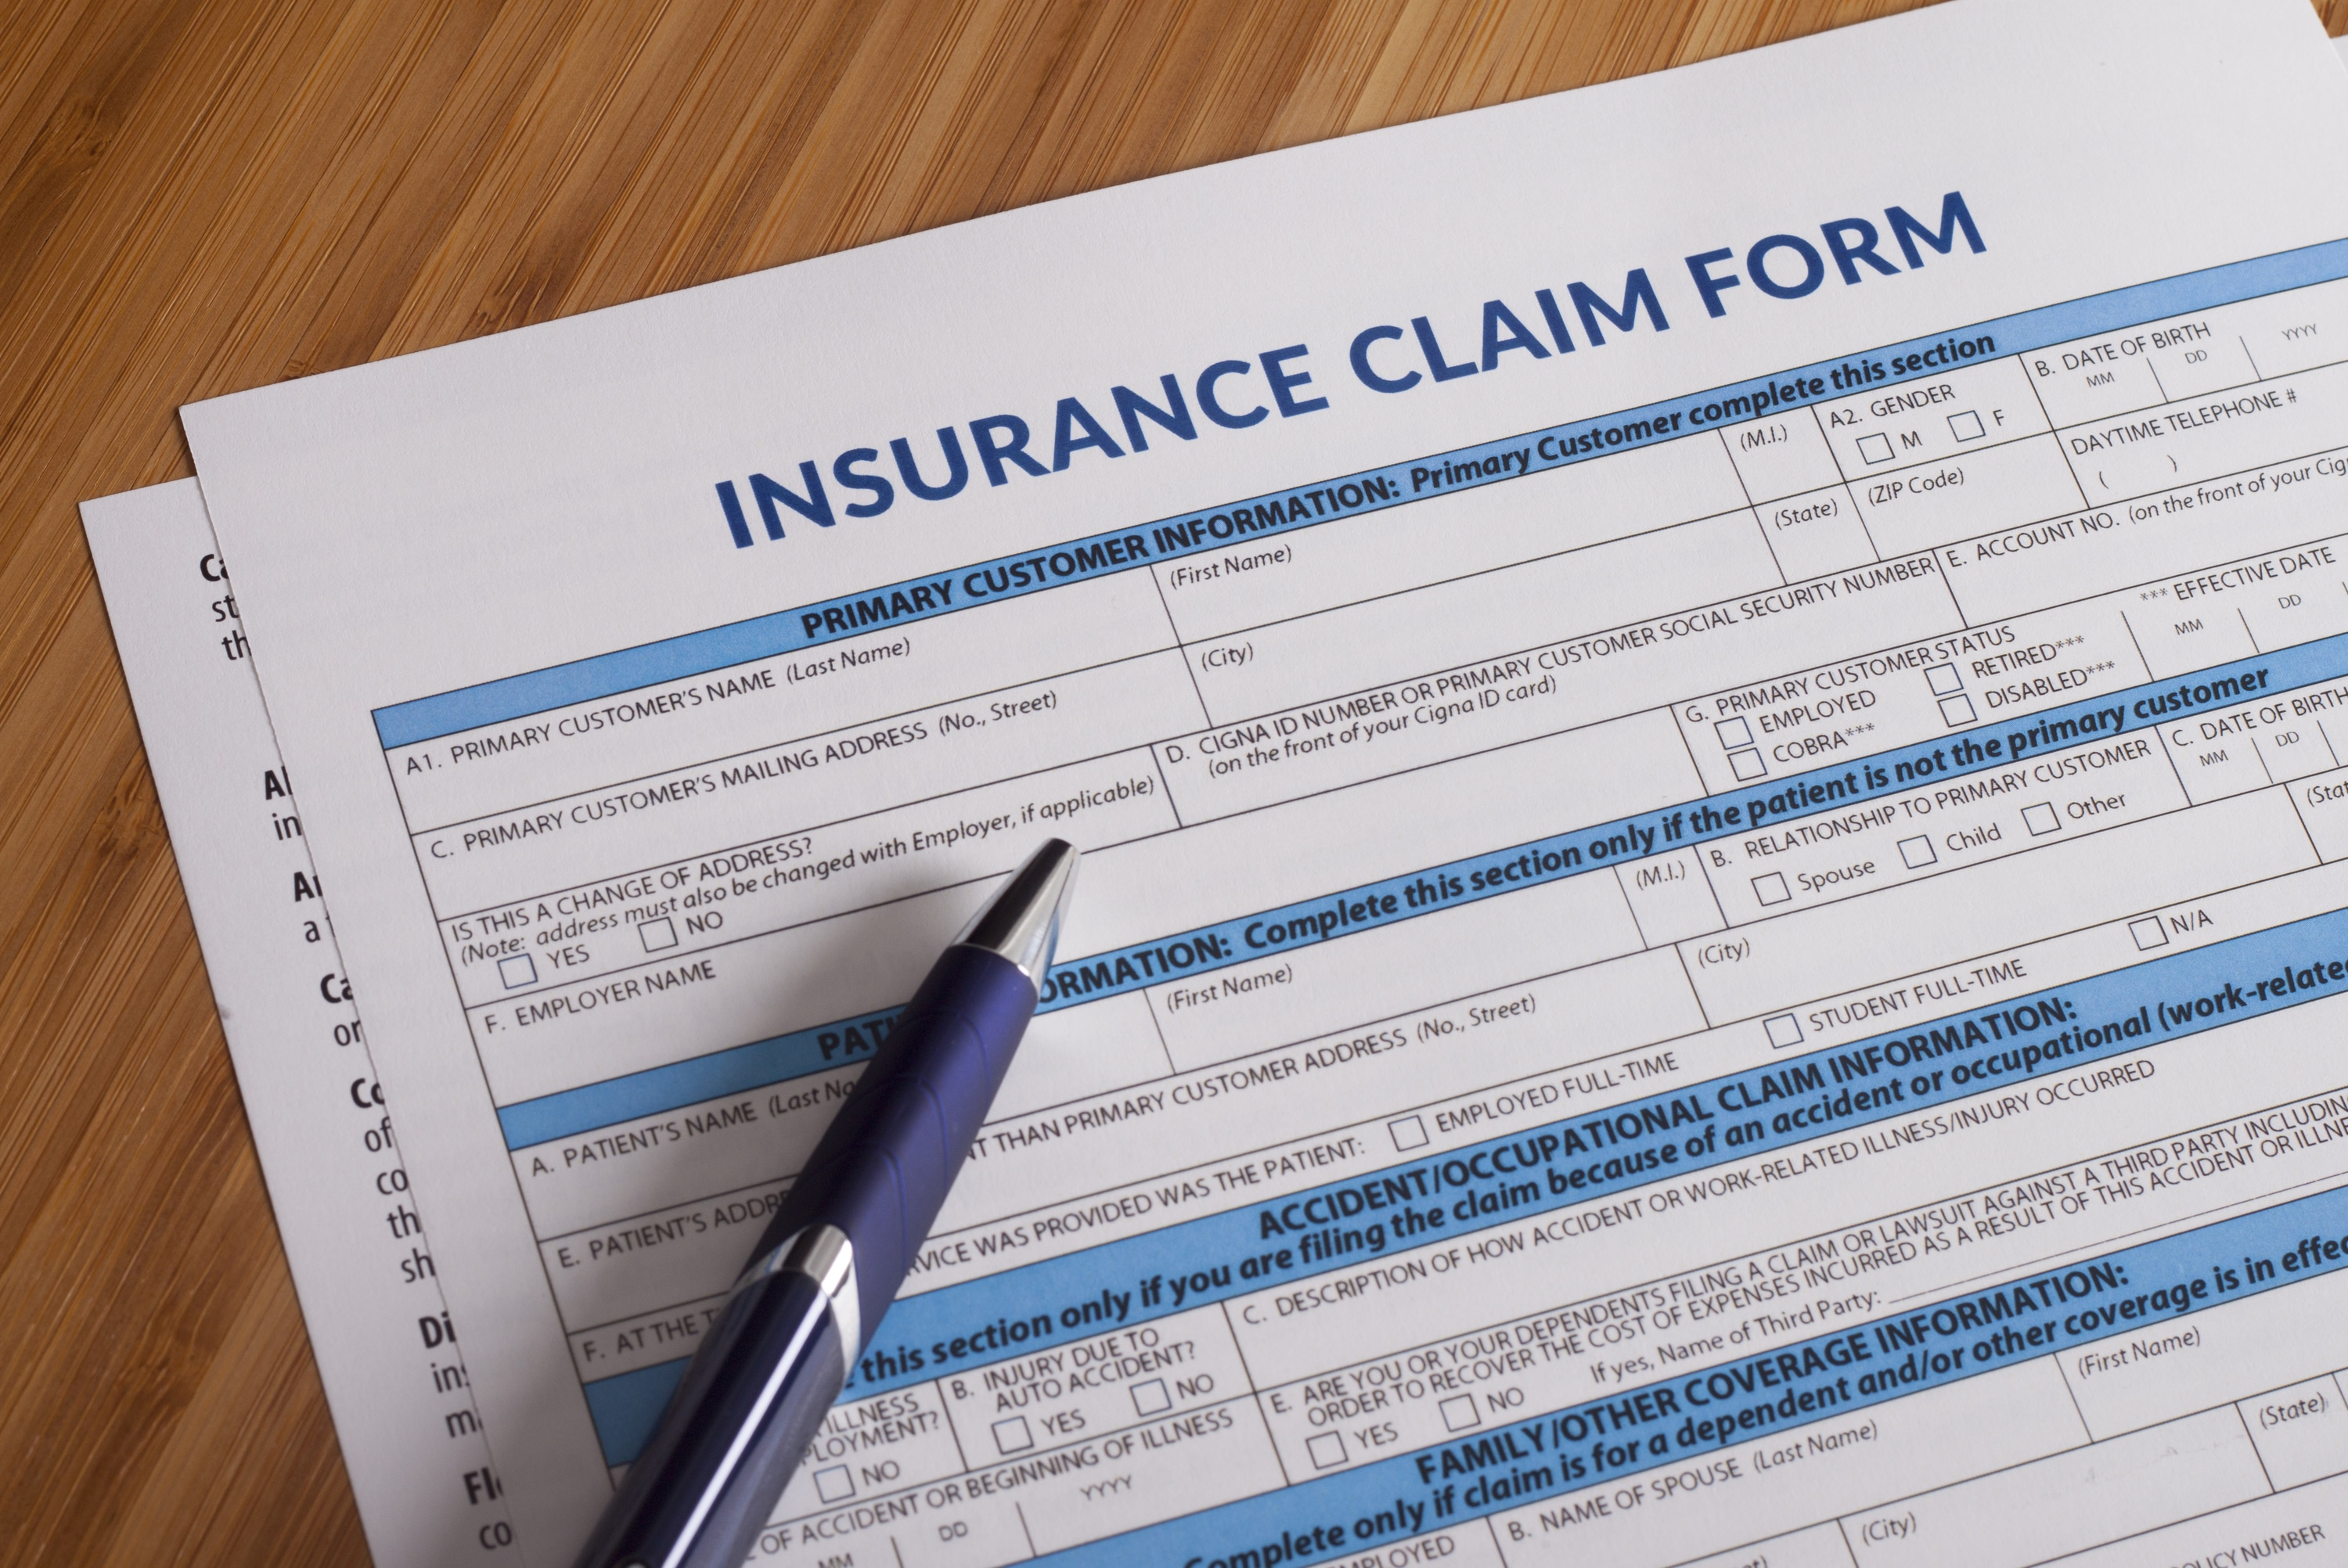 How to Get a Health Insurance Claim Paid and Appeal a Denial